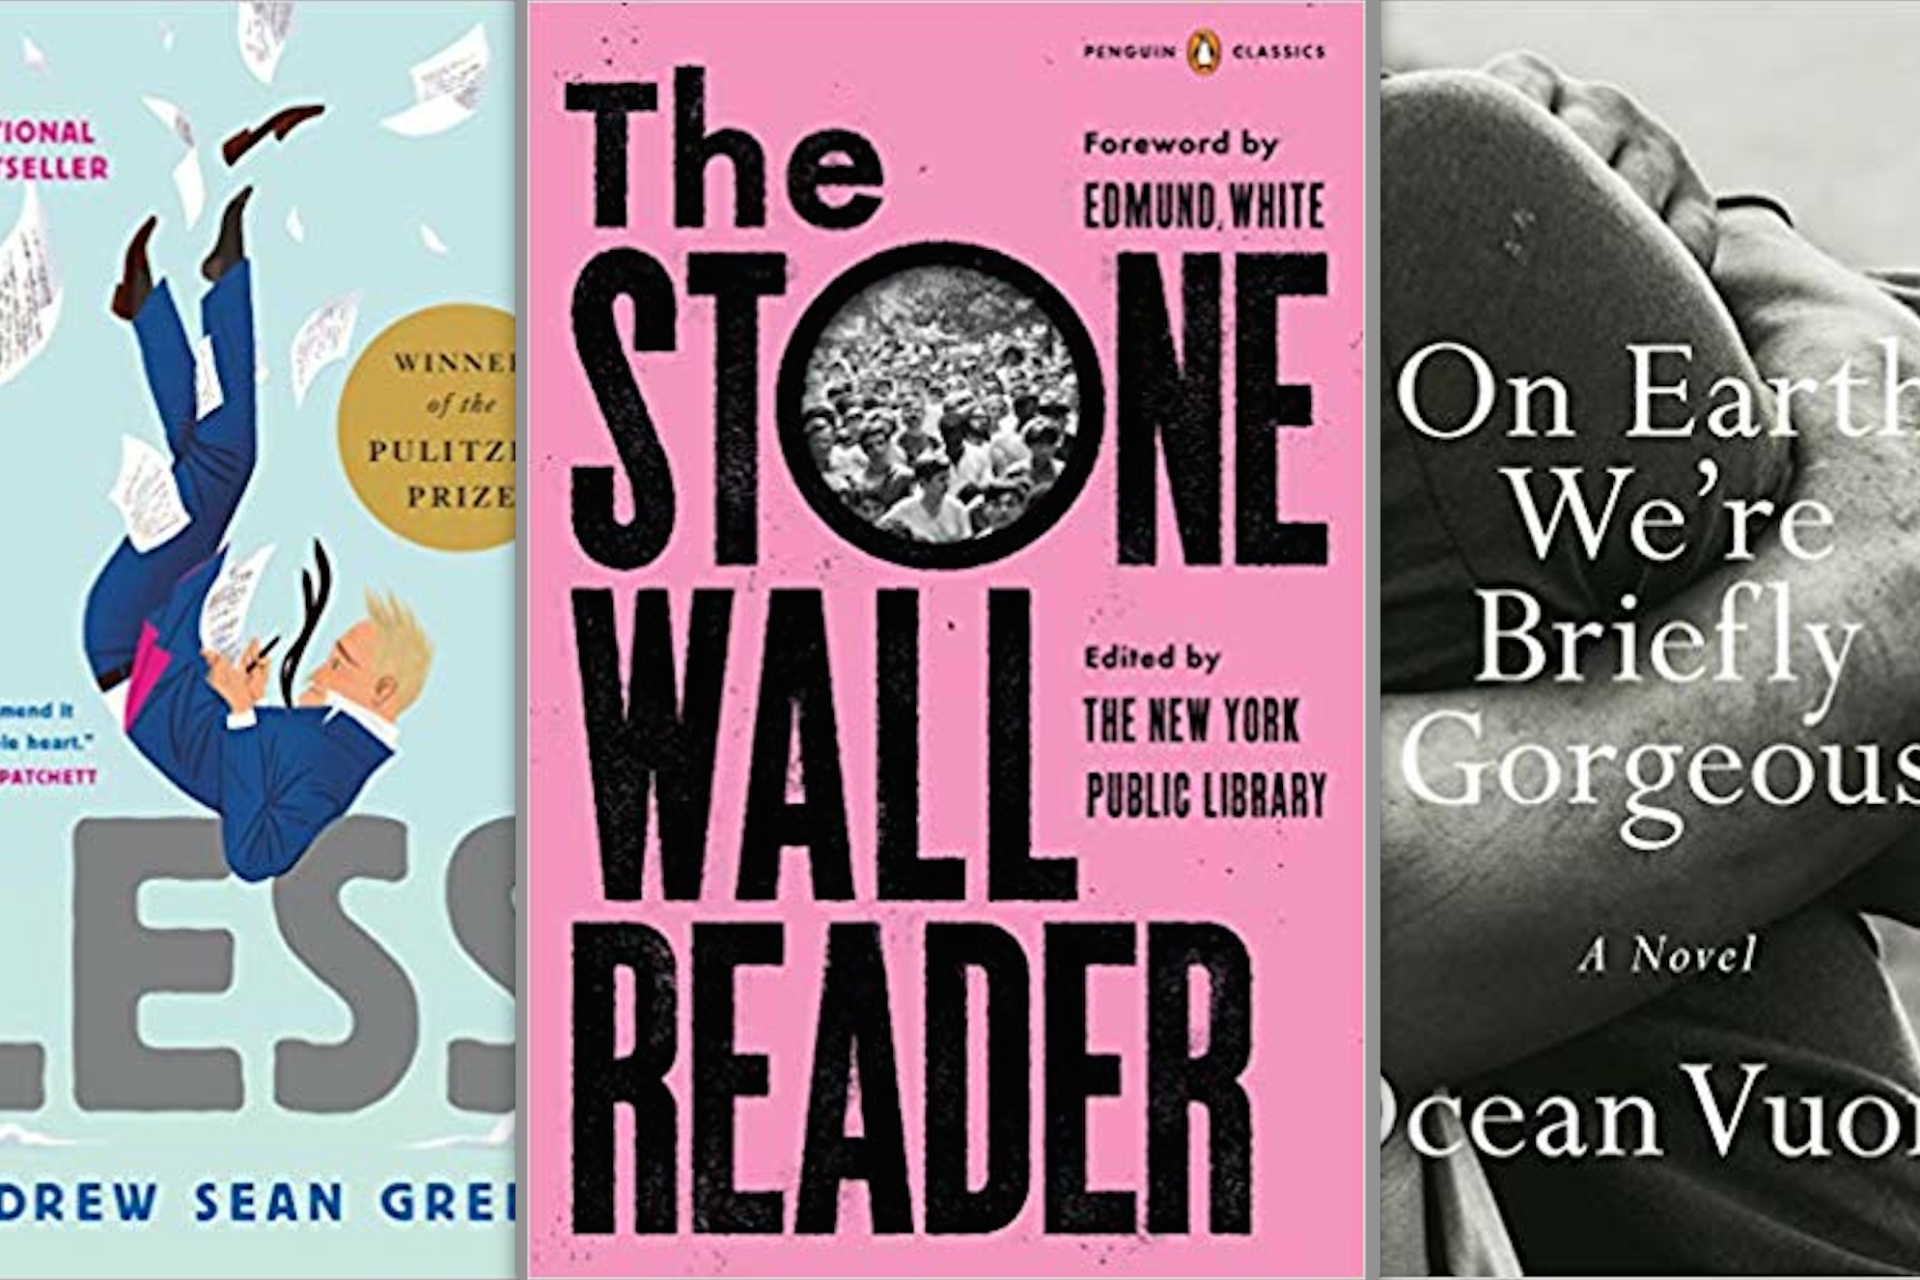 20 LGBTQ+ Books To Check Out This Pride Month